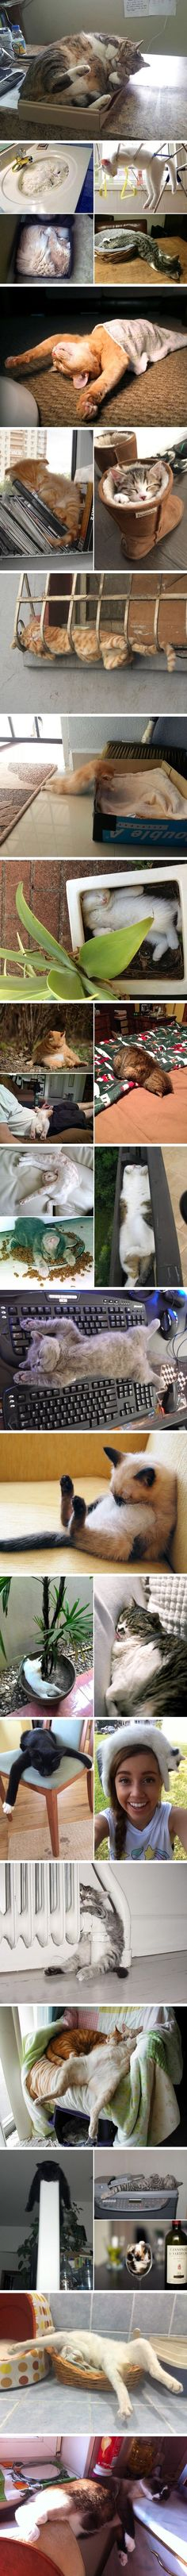 Cats master art of sleep-fu